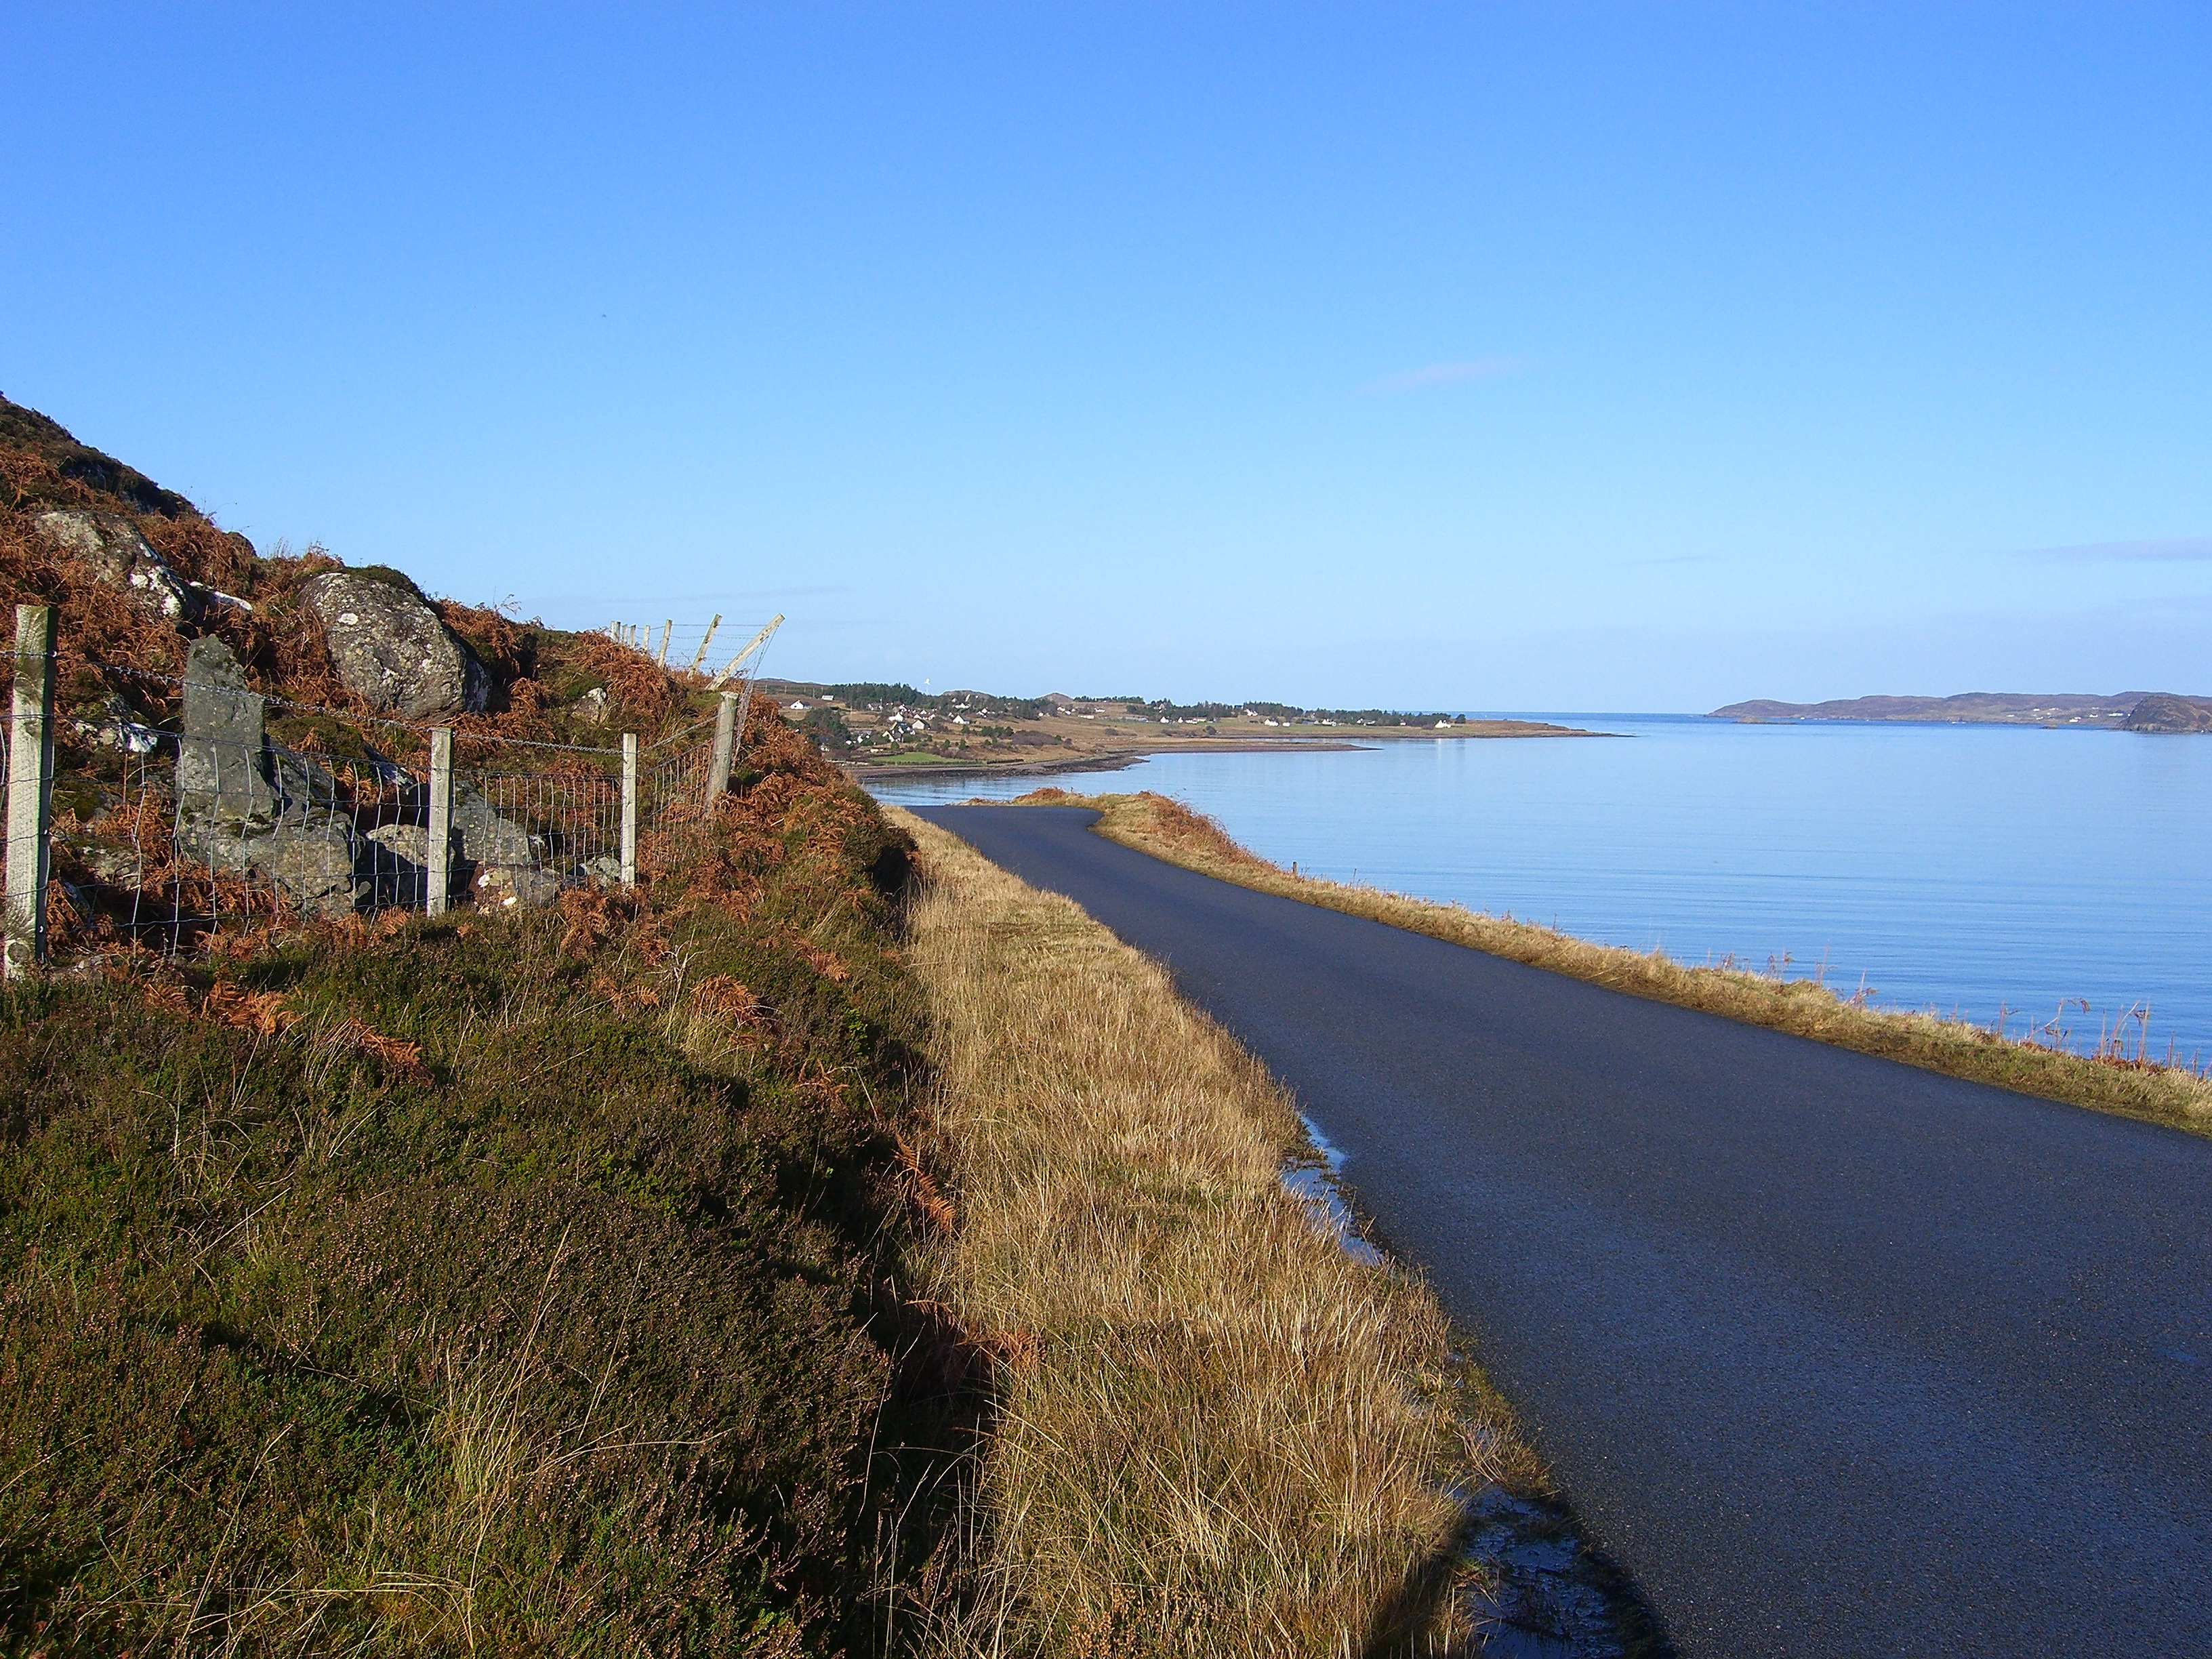 The road from Poolewe